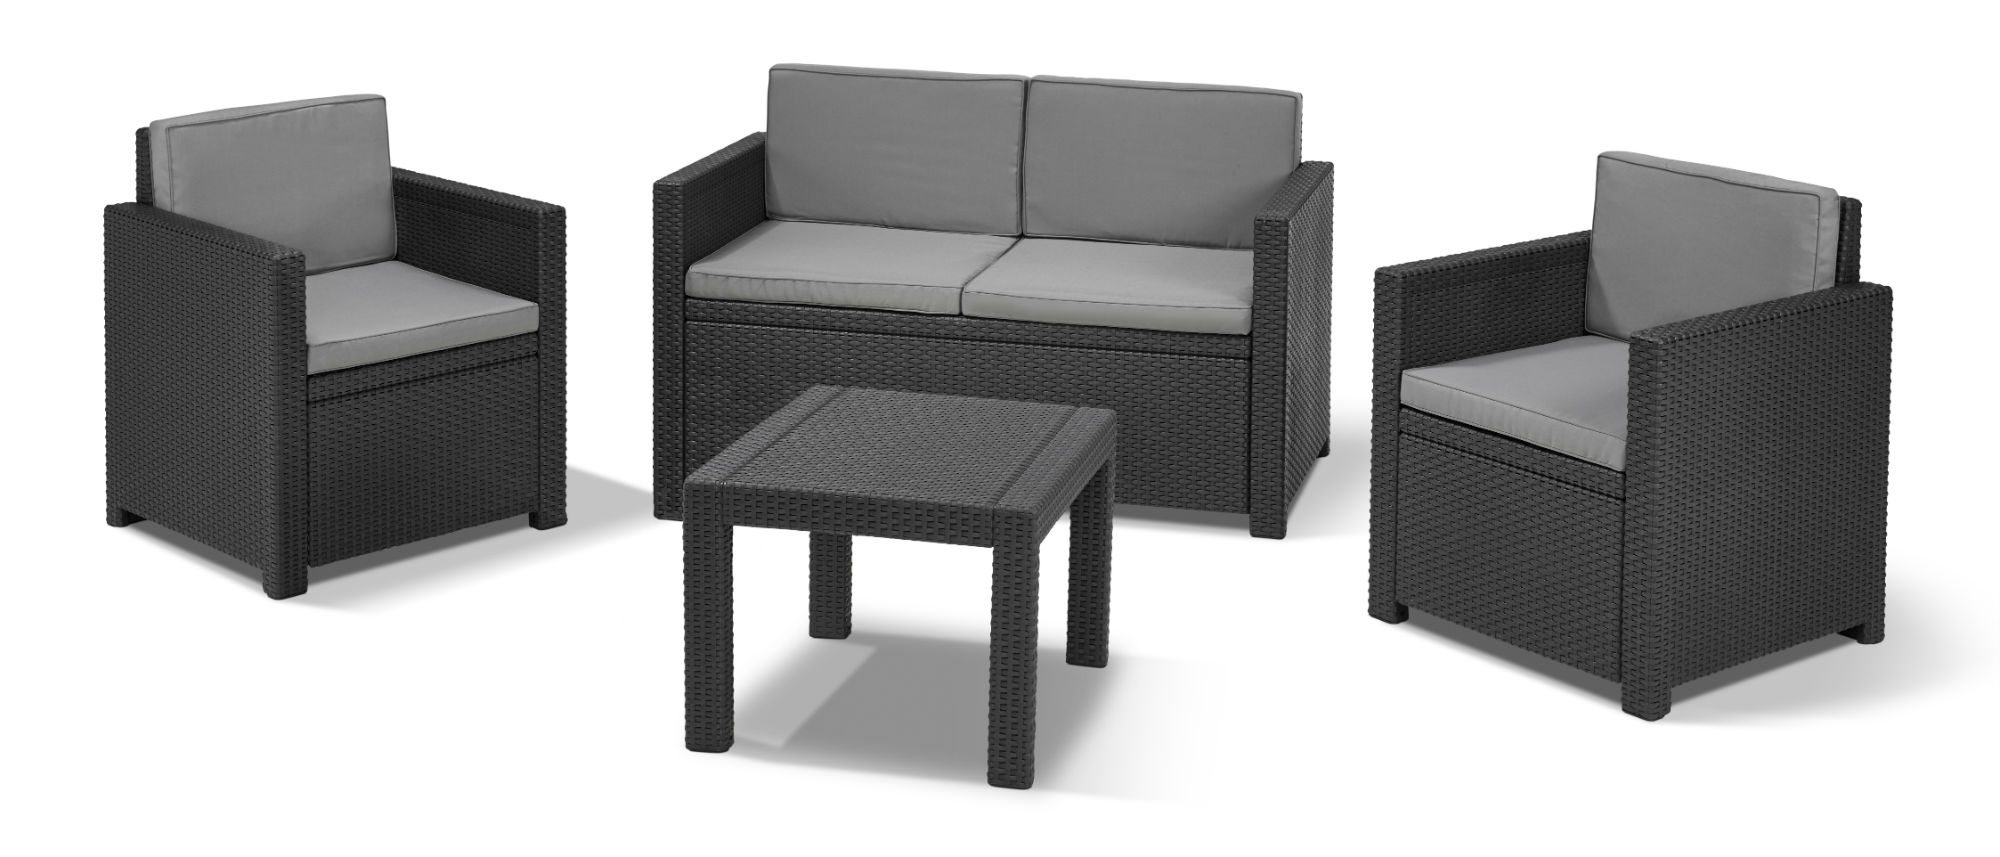 Allibert Salon De Jardin Allibert Victoria Lounge Set Graphite - Allibert